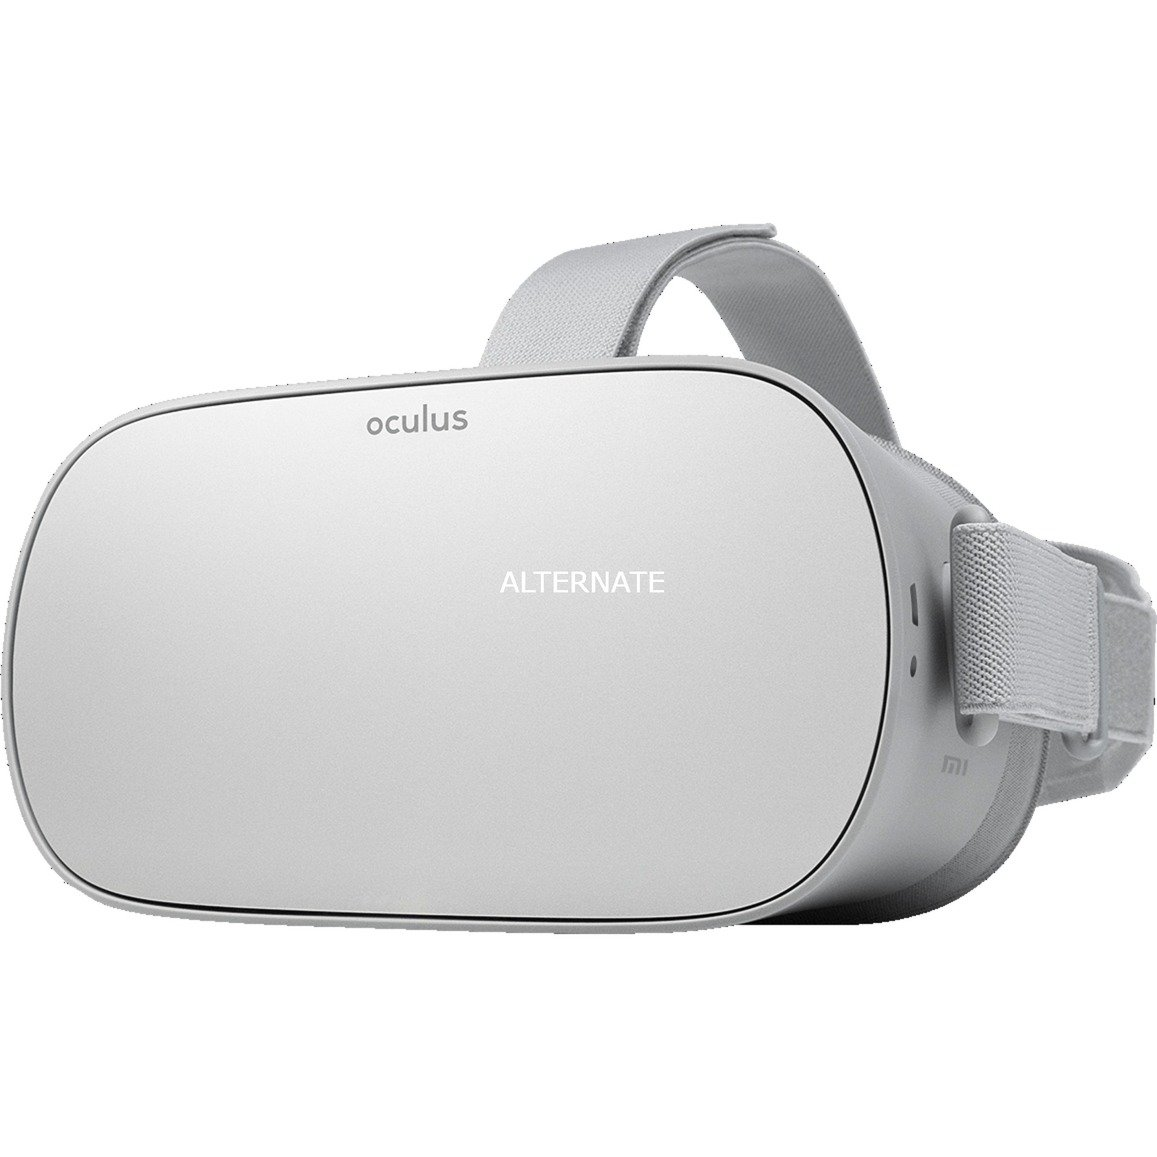 Go 32GB, VR-Brille